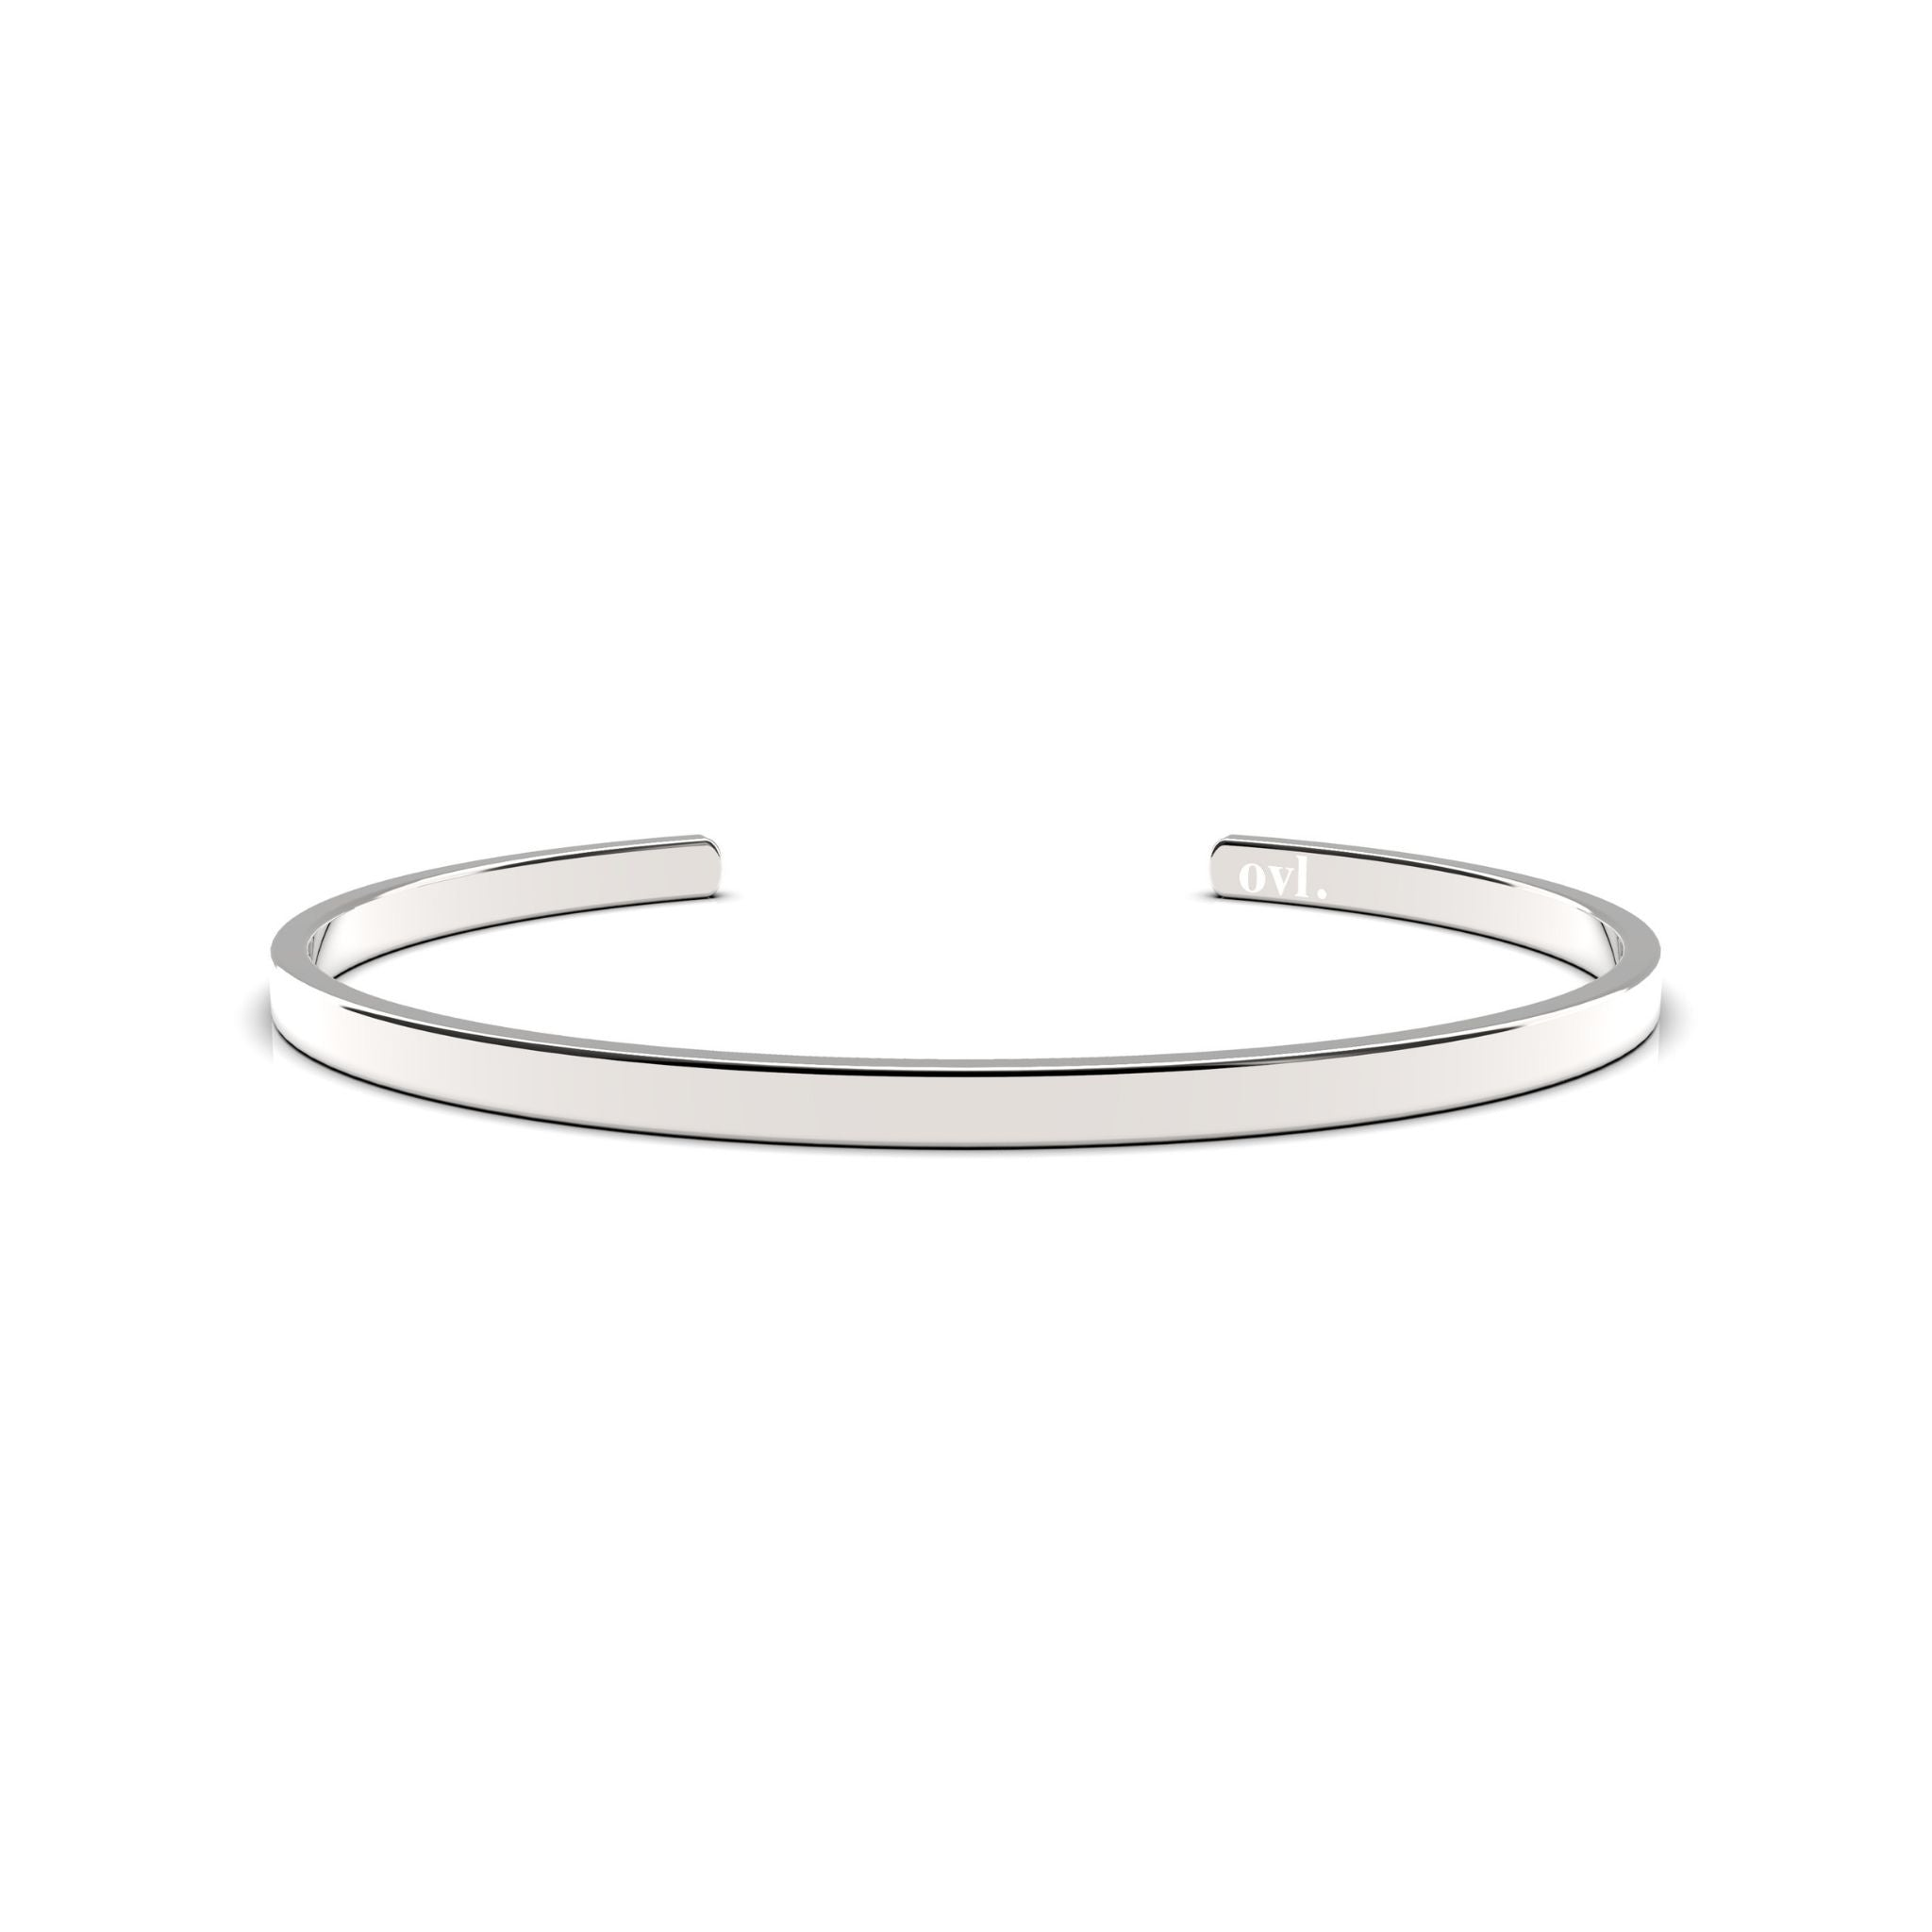 Life is tough mama, but so are you cuff bangle